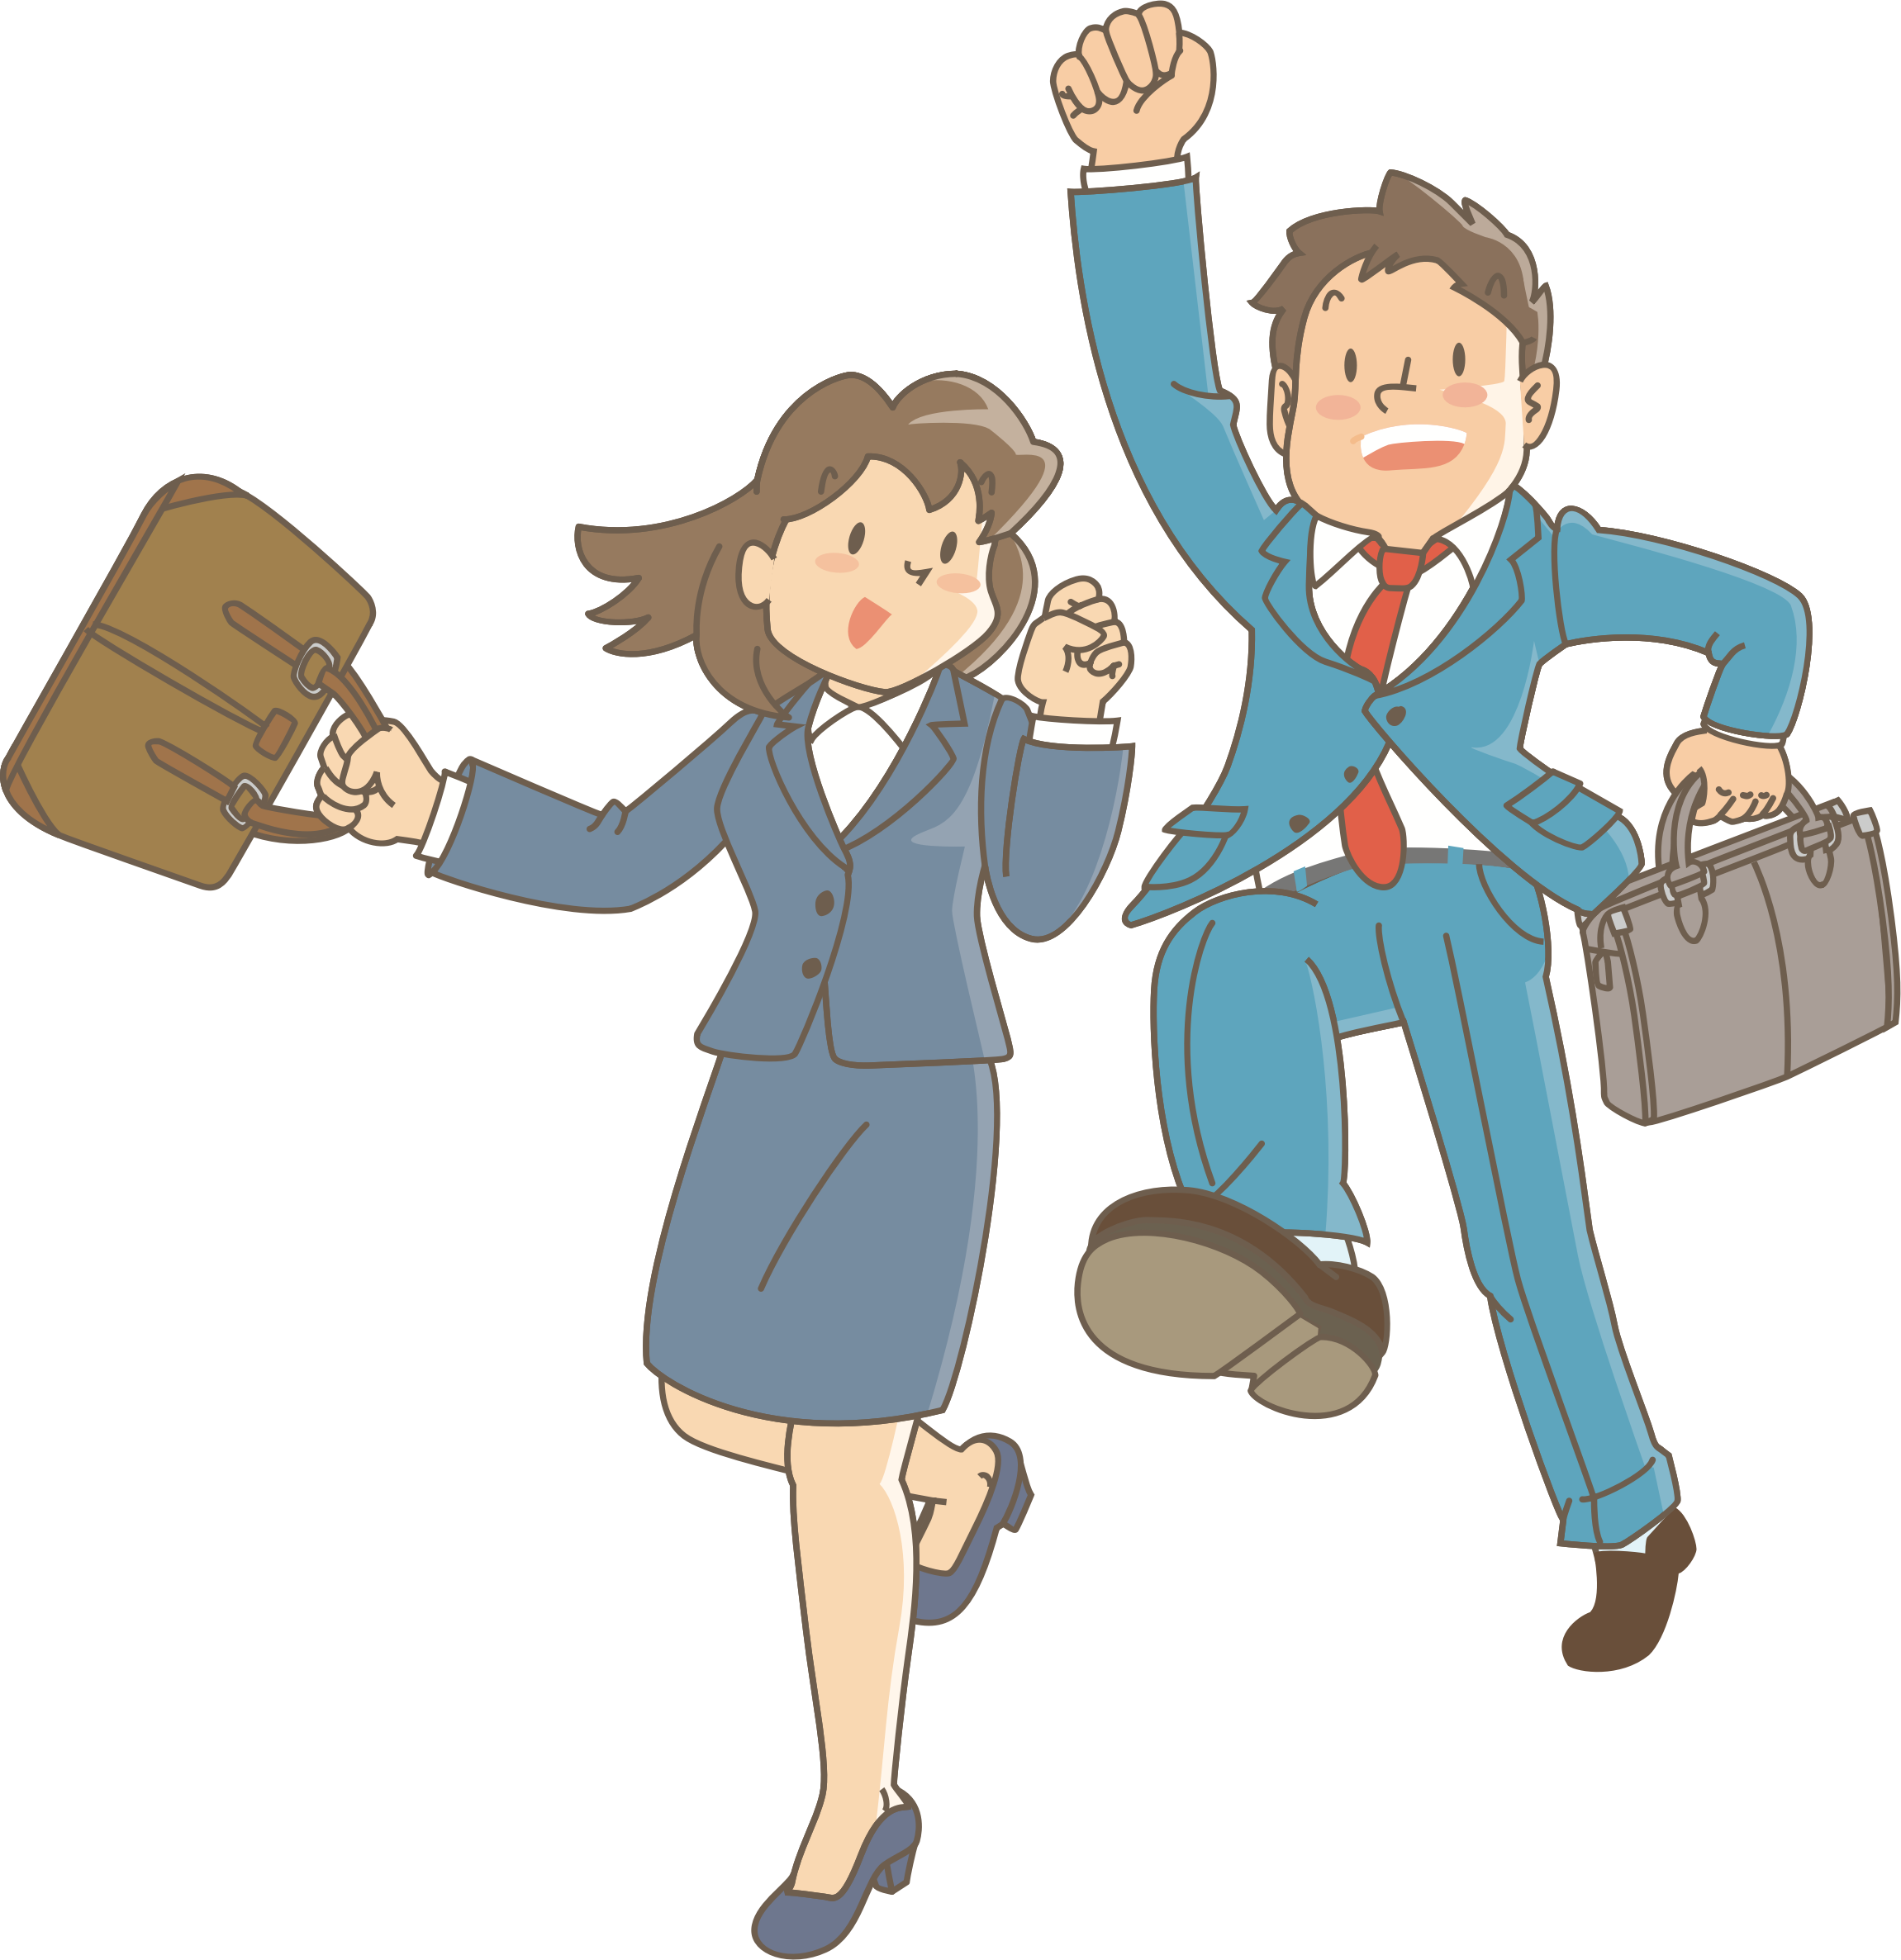 Employee clipart work clipart. Excited employees icons png